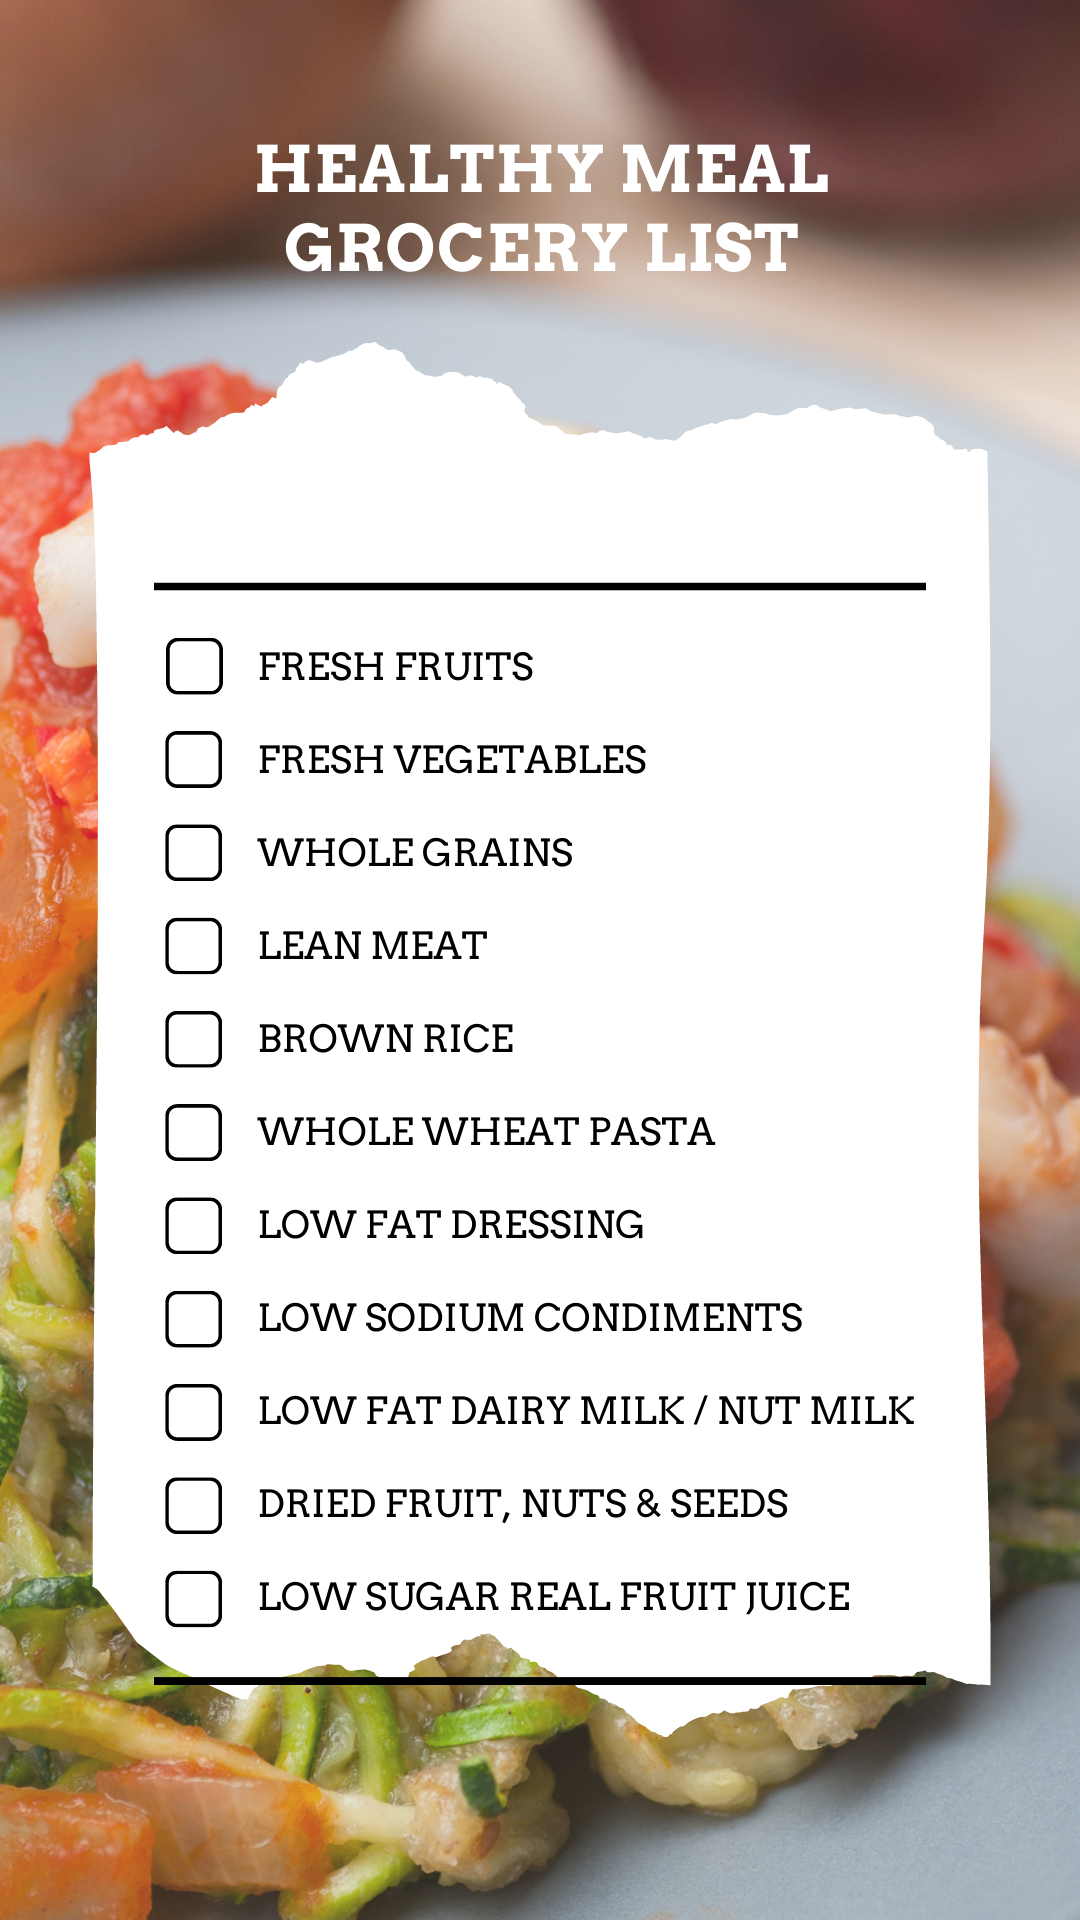 Prepare a Checklist of Groceries